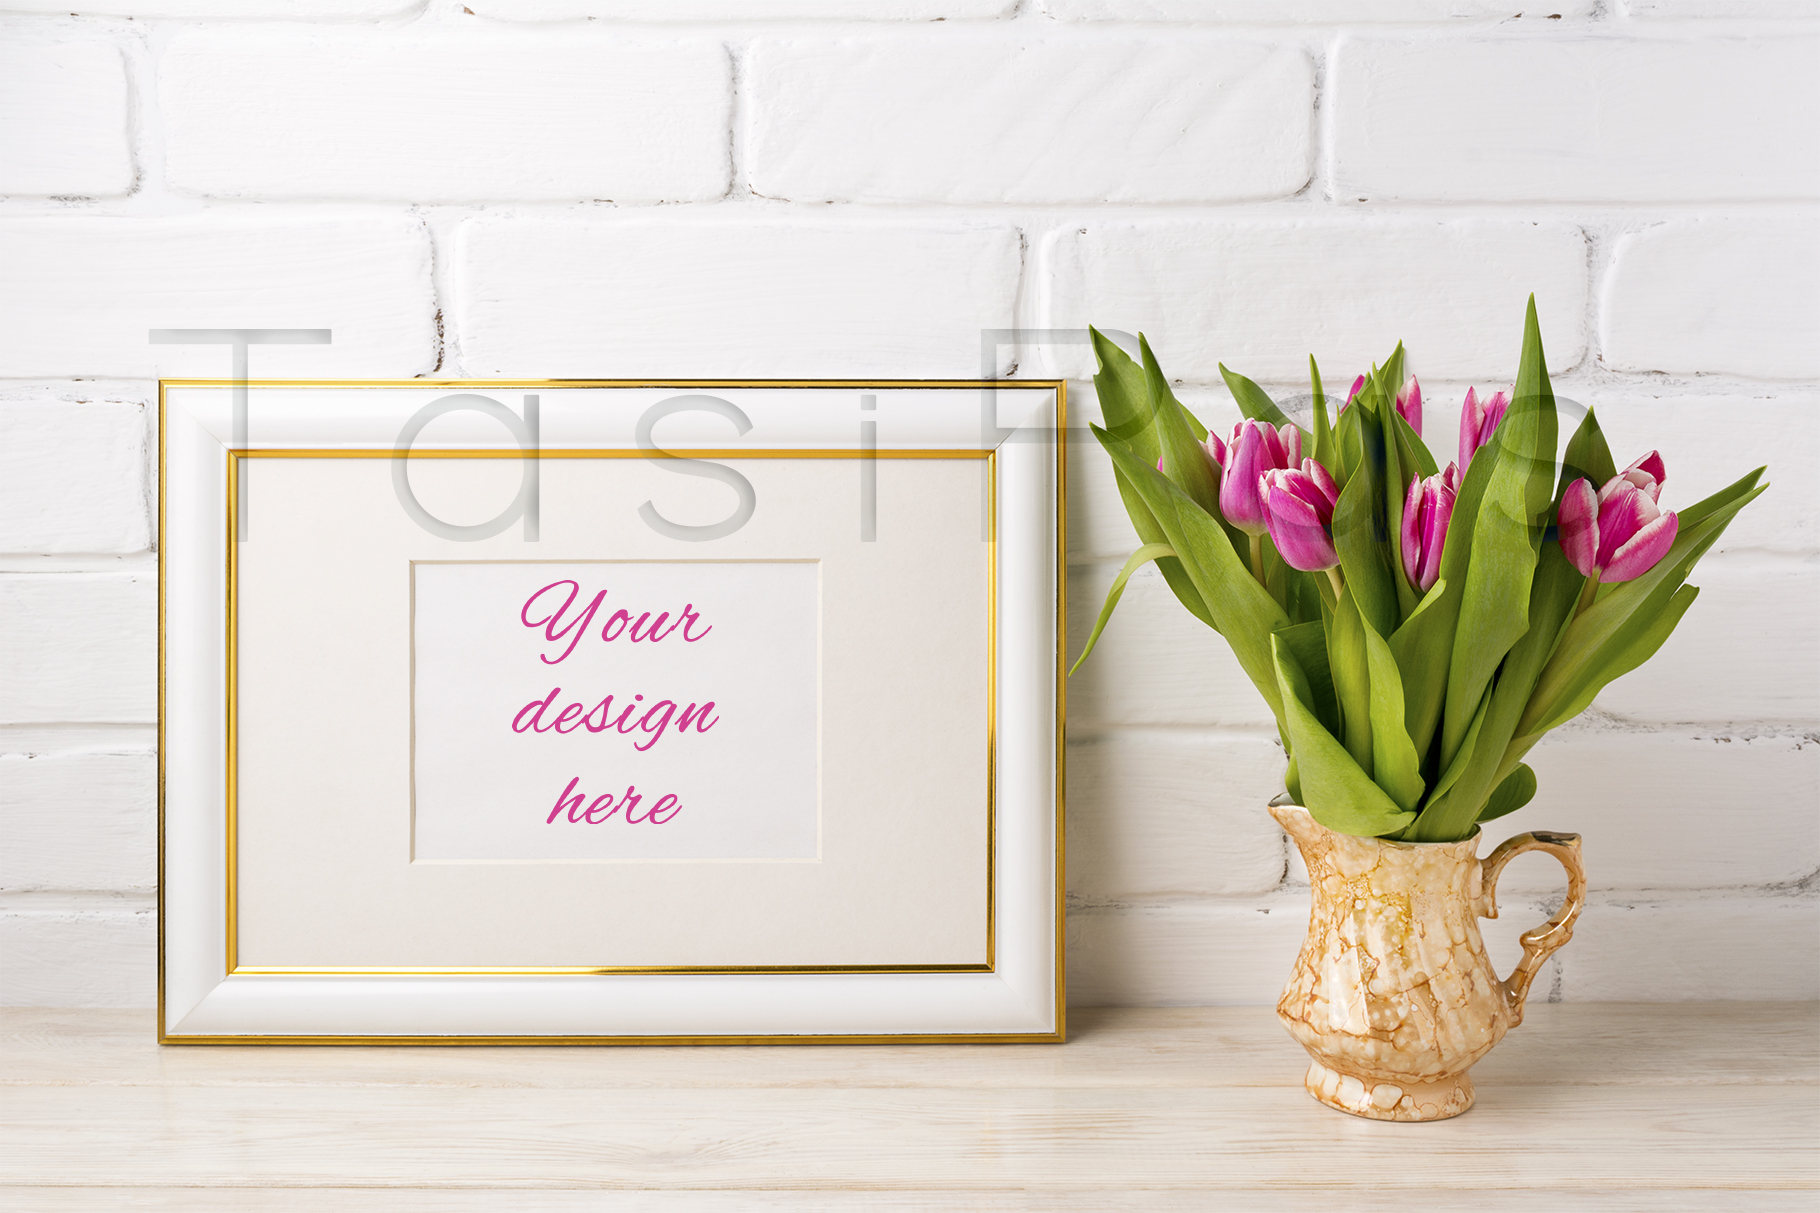 Print on Demand: Gold Decorated Landscape Frame Mockup with Bright Pink Tulips in Golden Vase Graphic Product Mockups By TasiPas